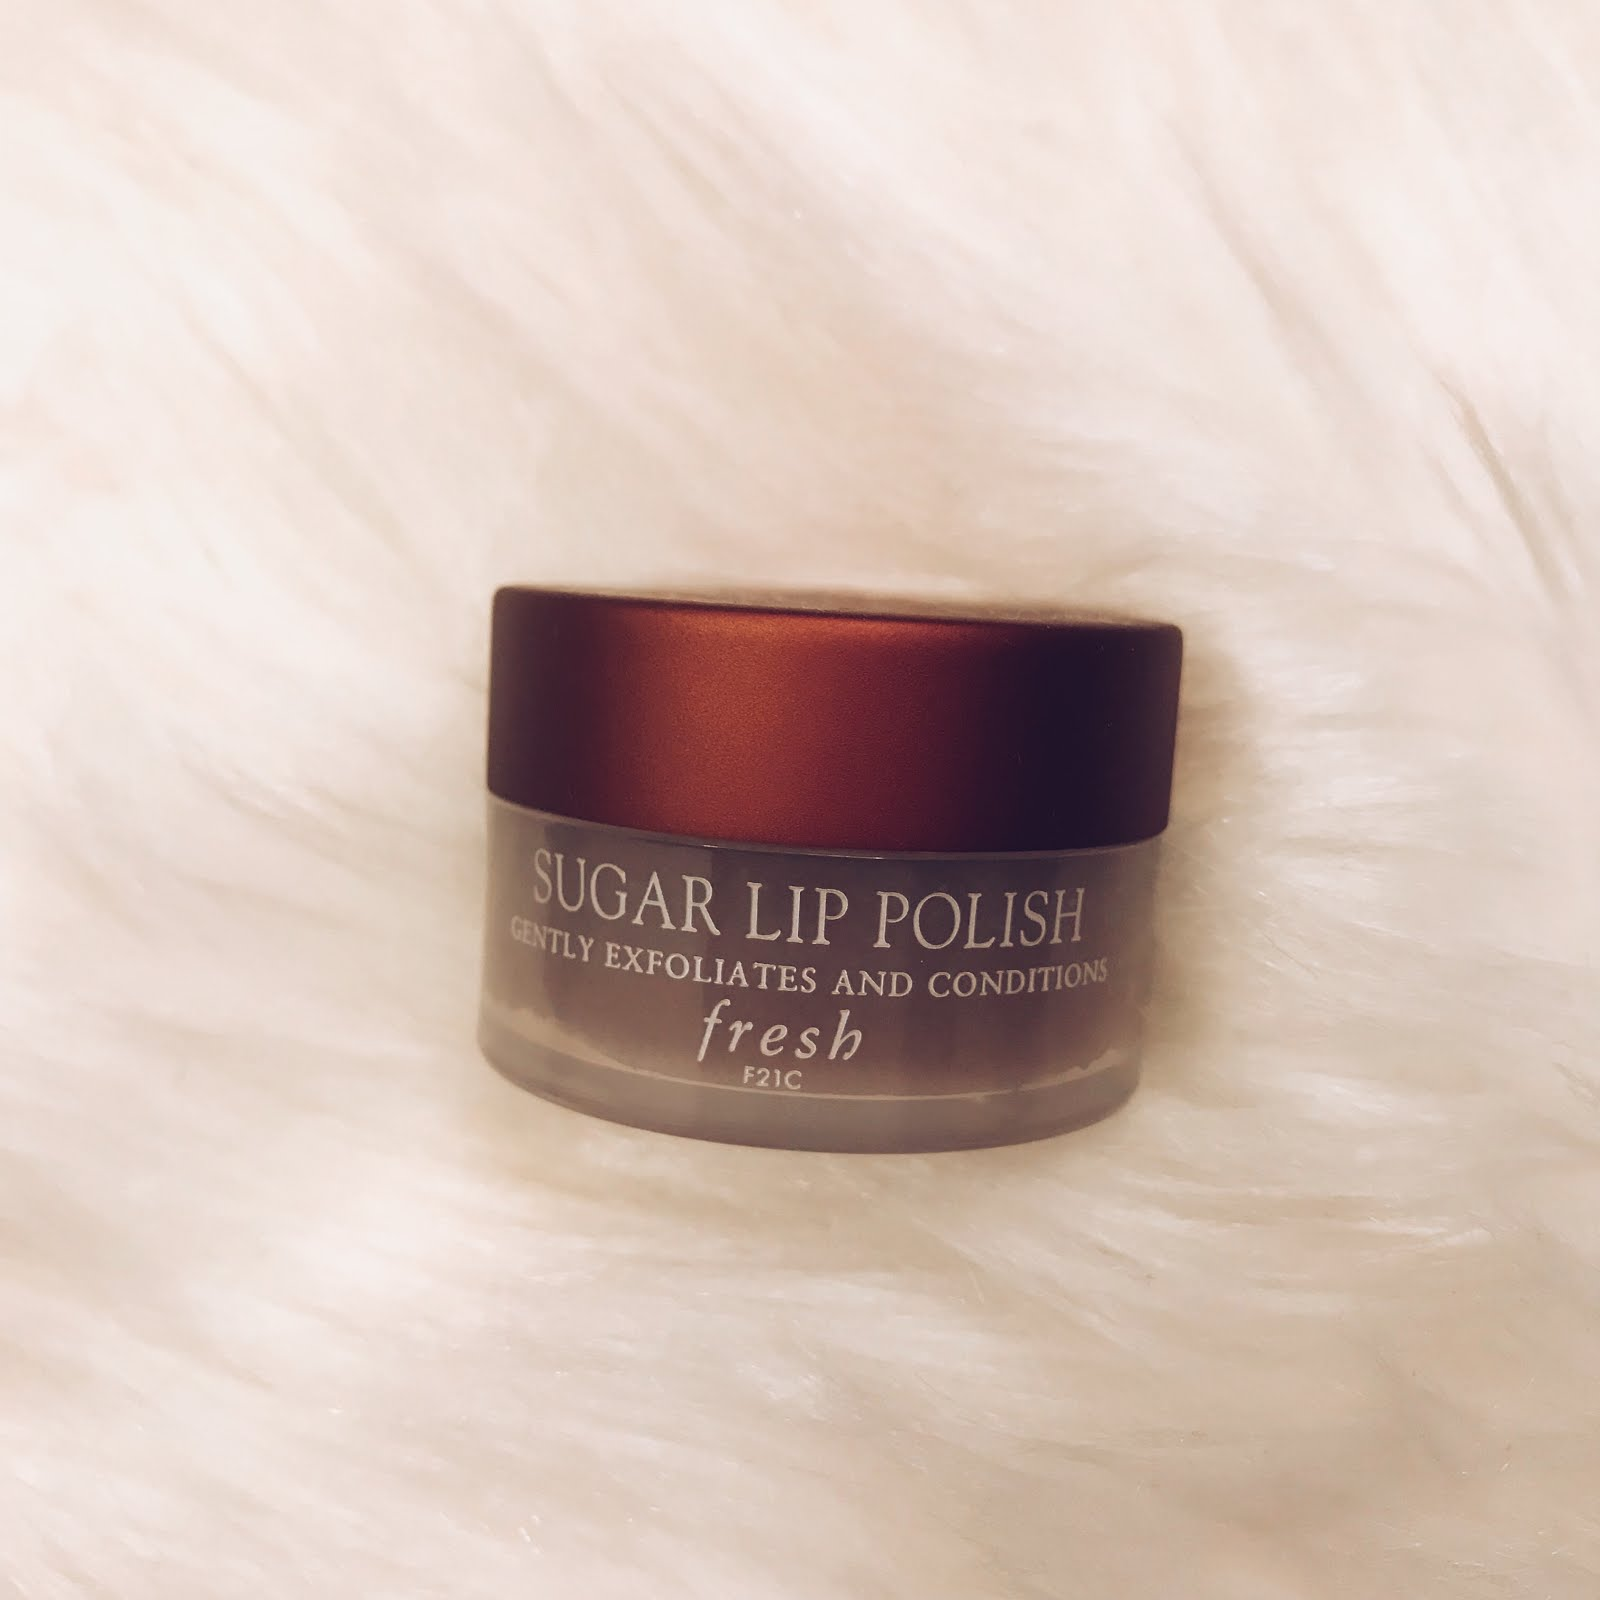 Fresh Lotus Youth Preserve Face Cream Acne